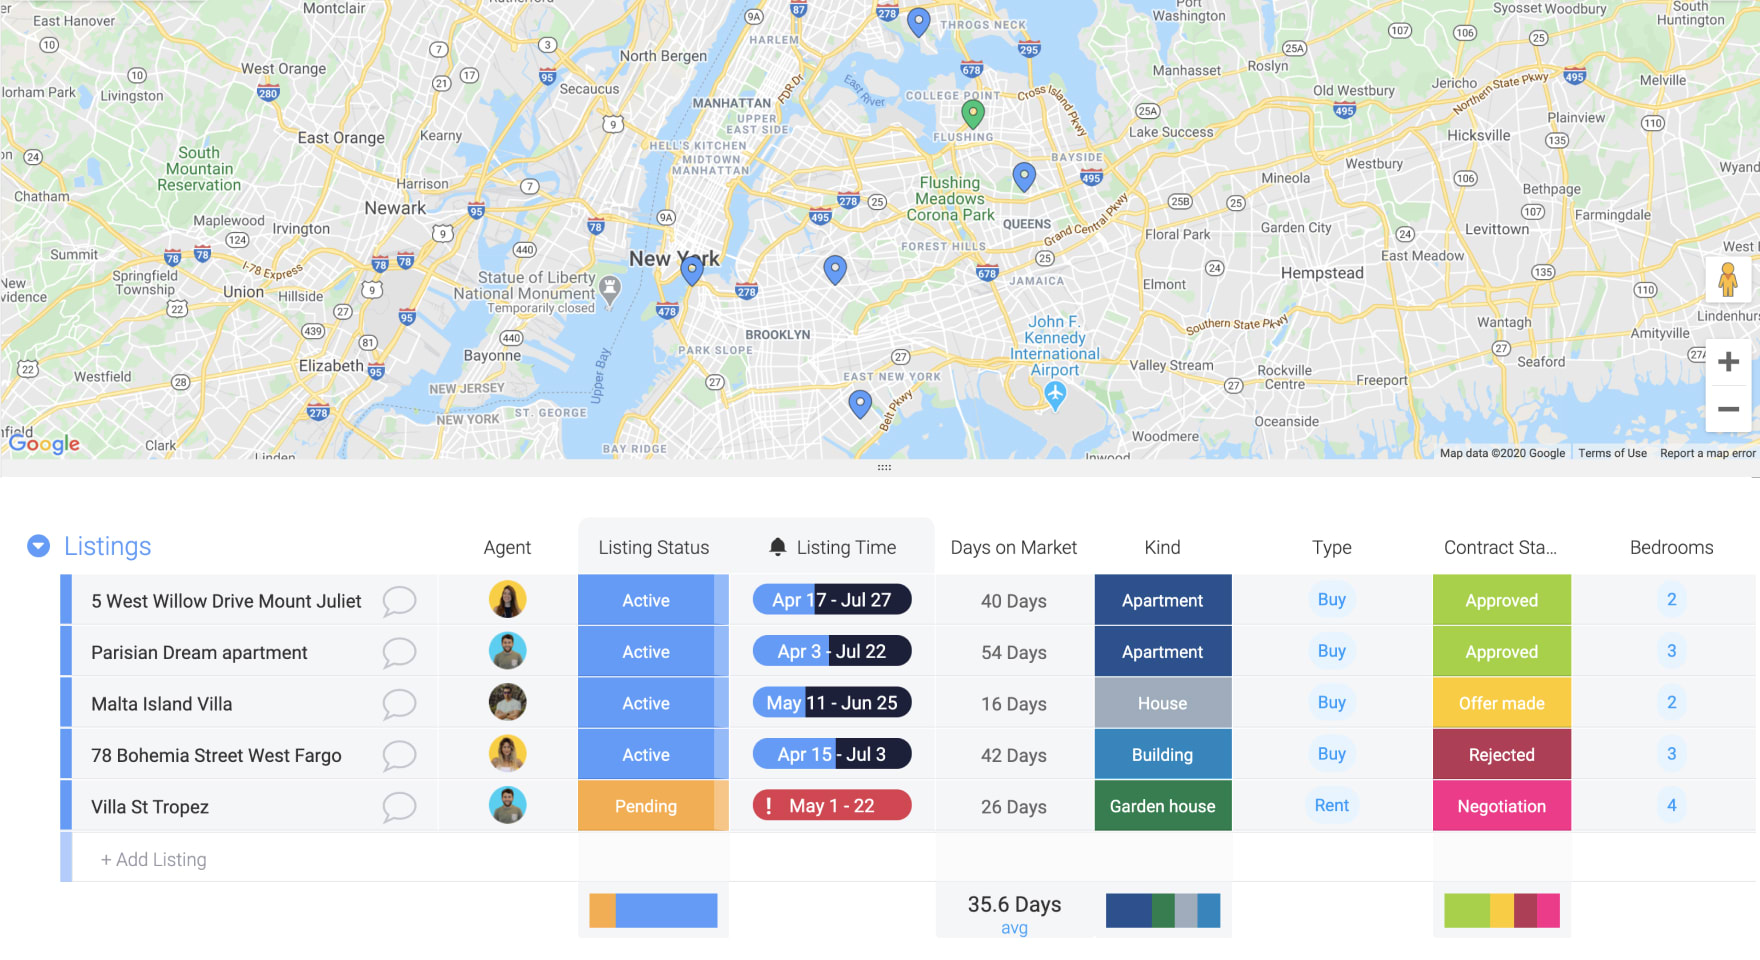 Manage your listings with ease